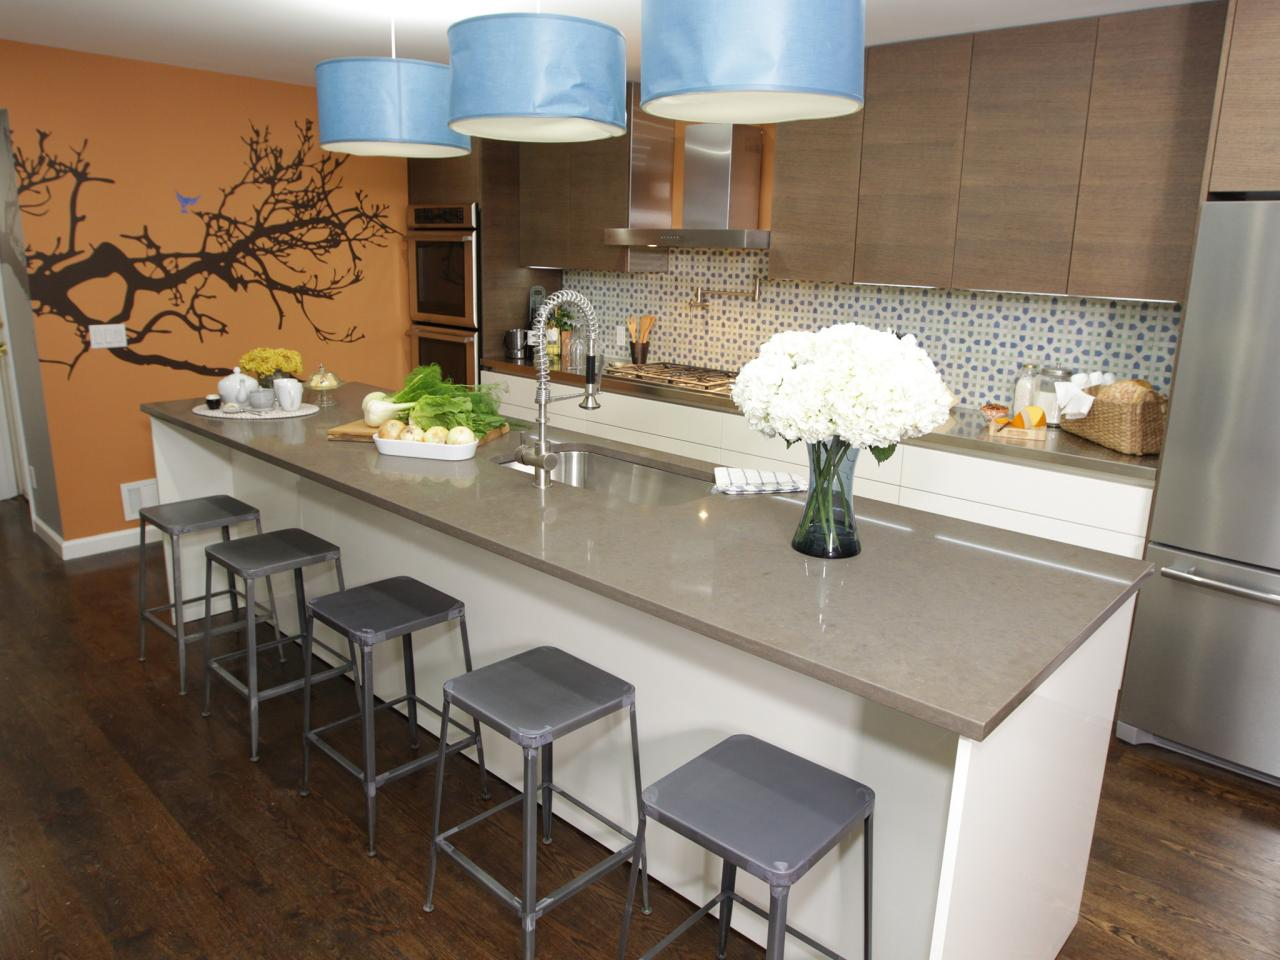 kitchen island breakfast bar pictures amp ideas from hgtv kitchen kitchen island with breakfast bar open kitchen